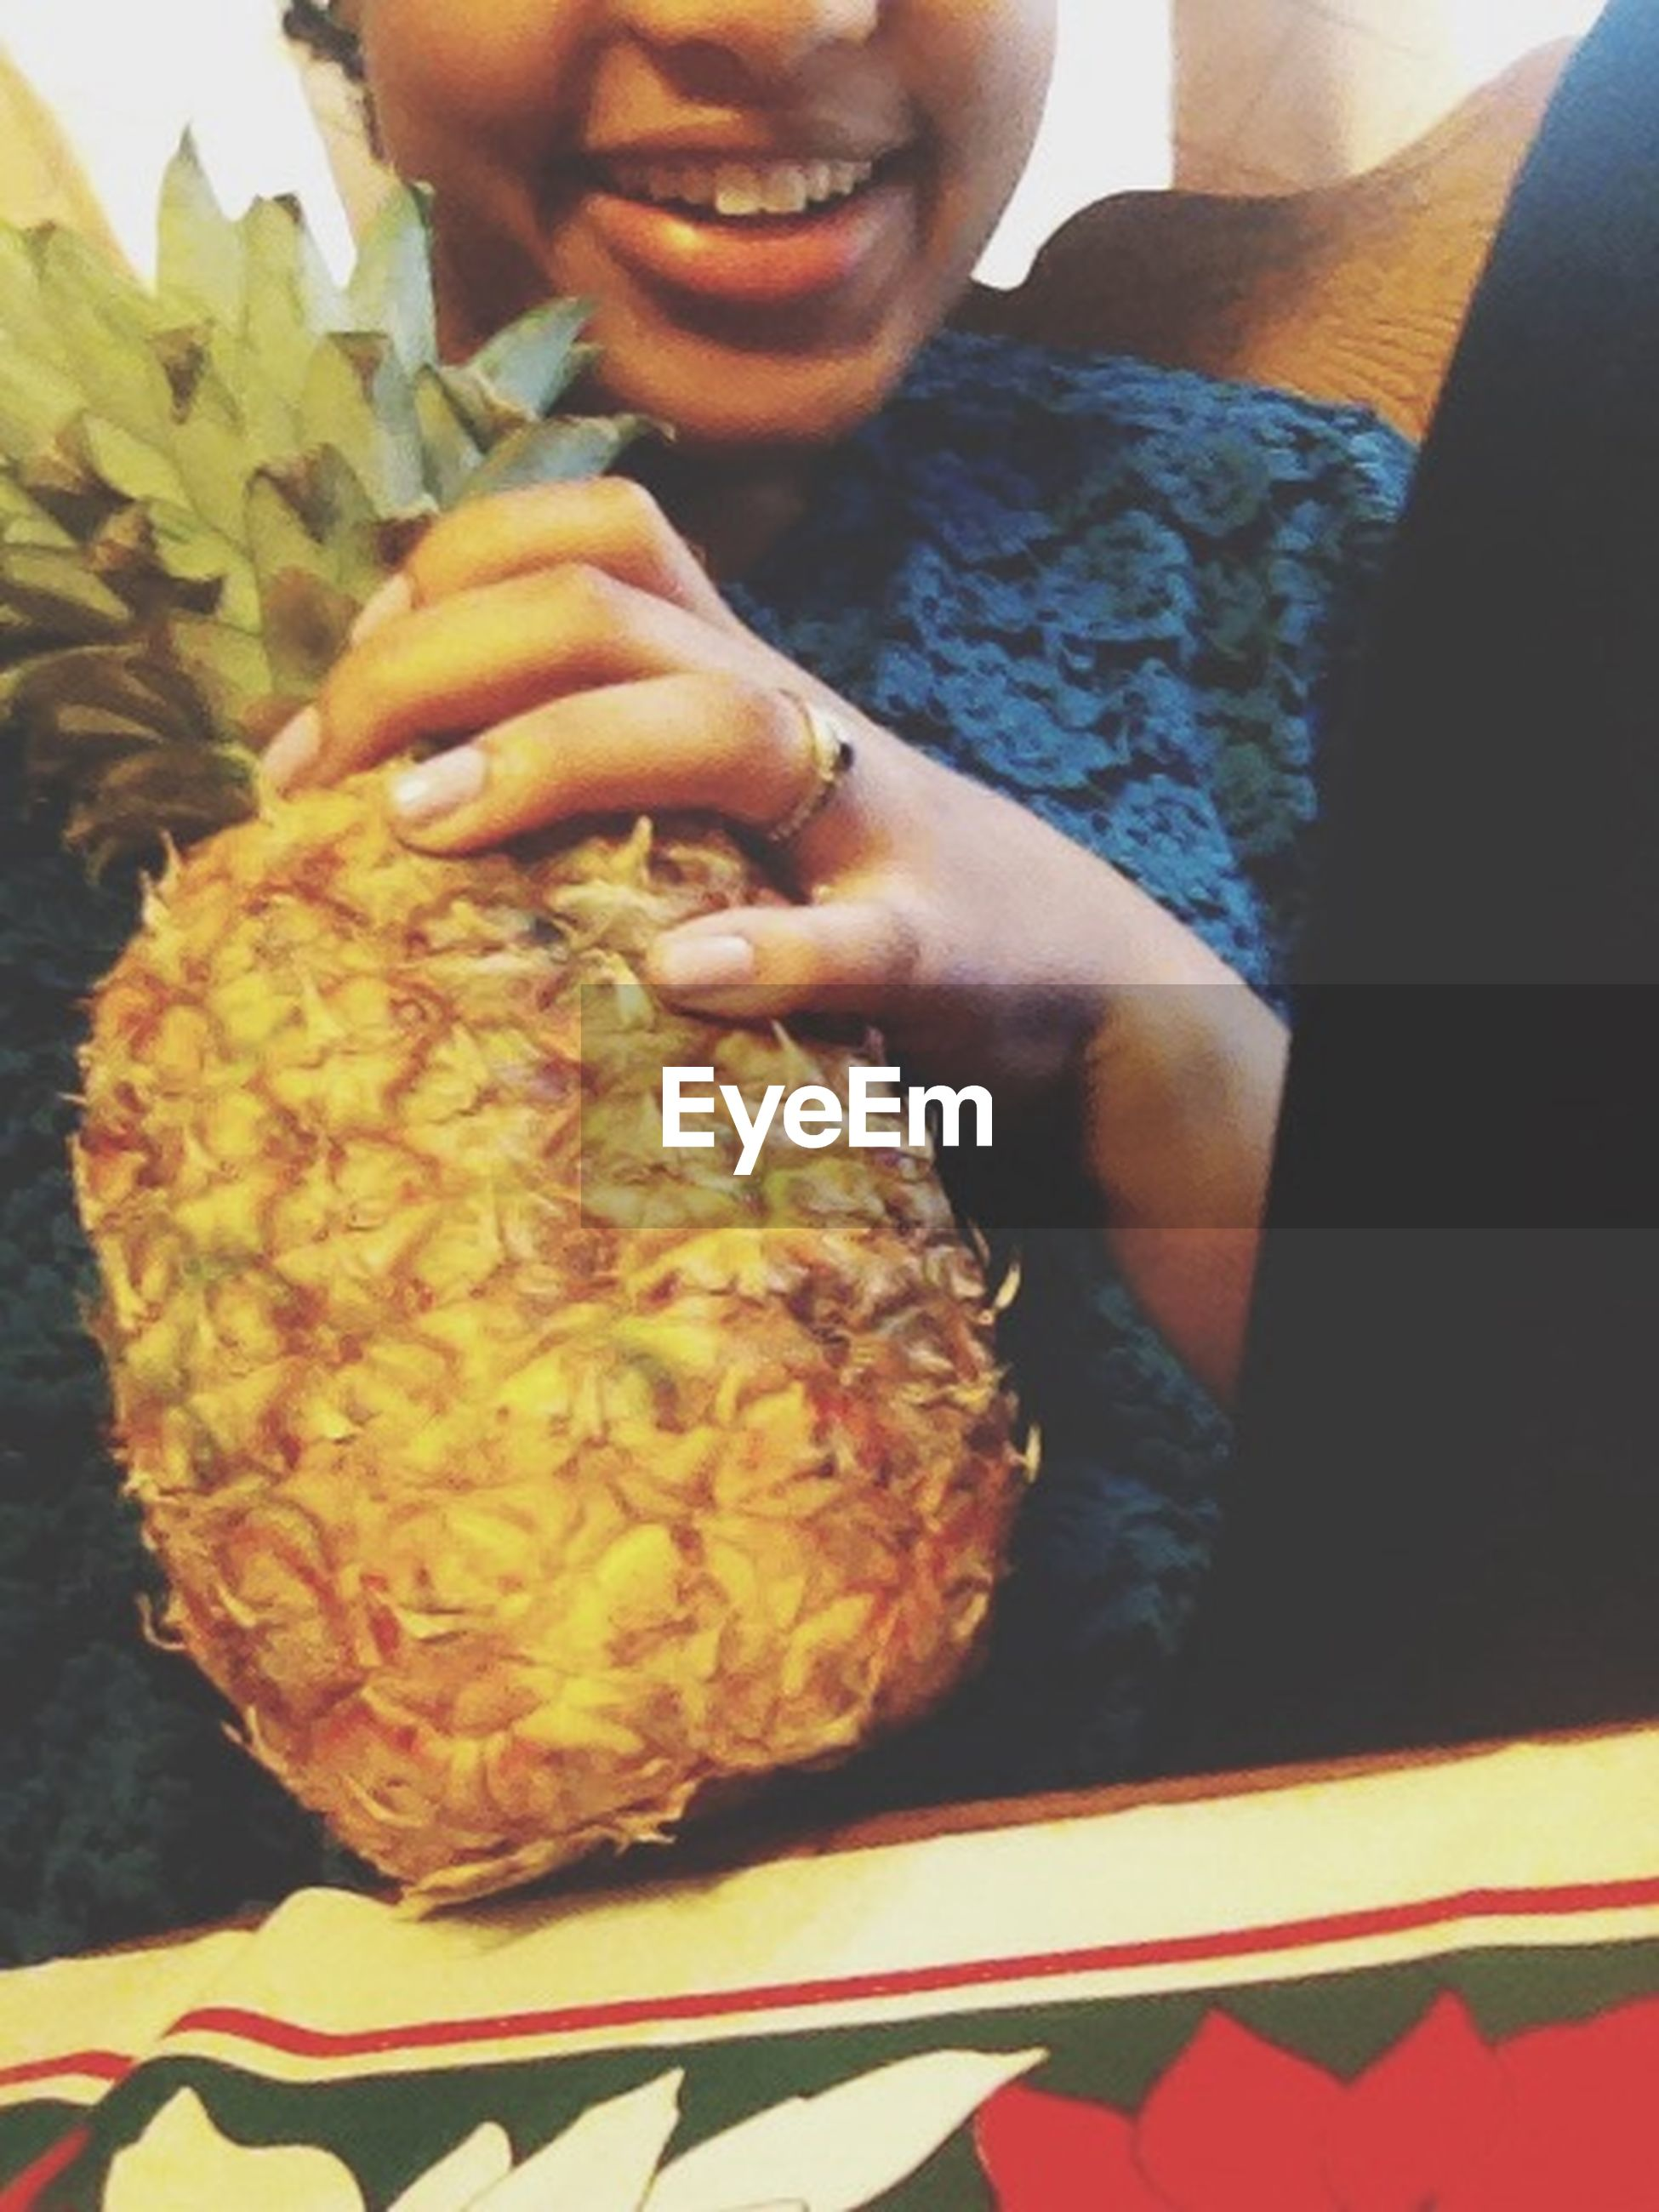 indoors, food and drink, food, person, freshness, holding, close-up, lifestyles, part of, healthy eating, cropped, midsection, unrecognizable person, leisure activity, human finger, focus on foreground